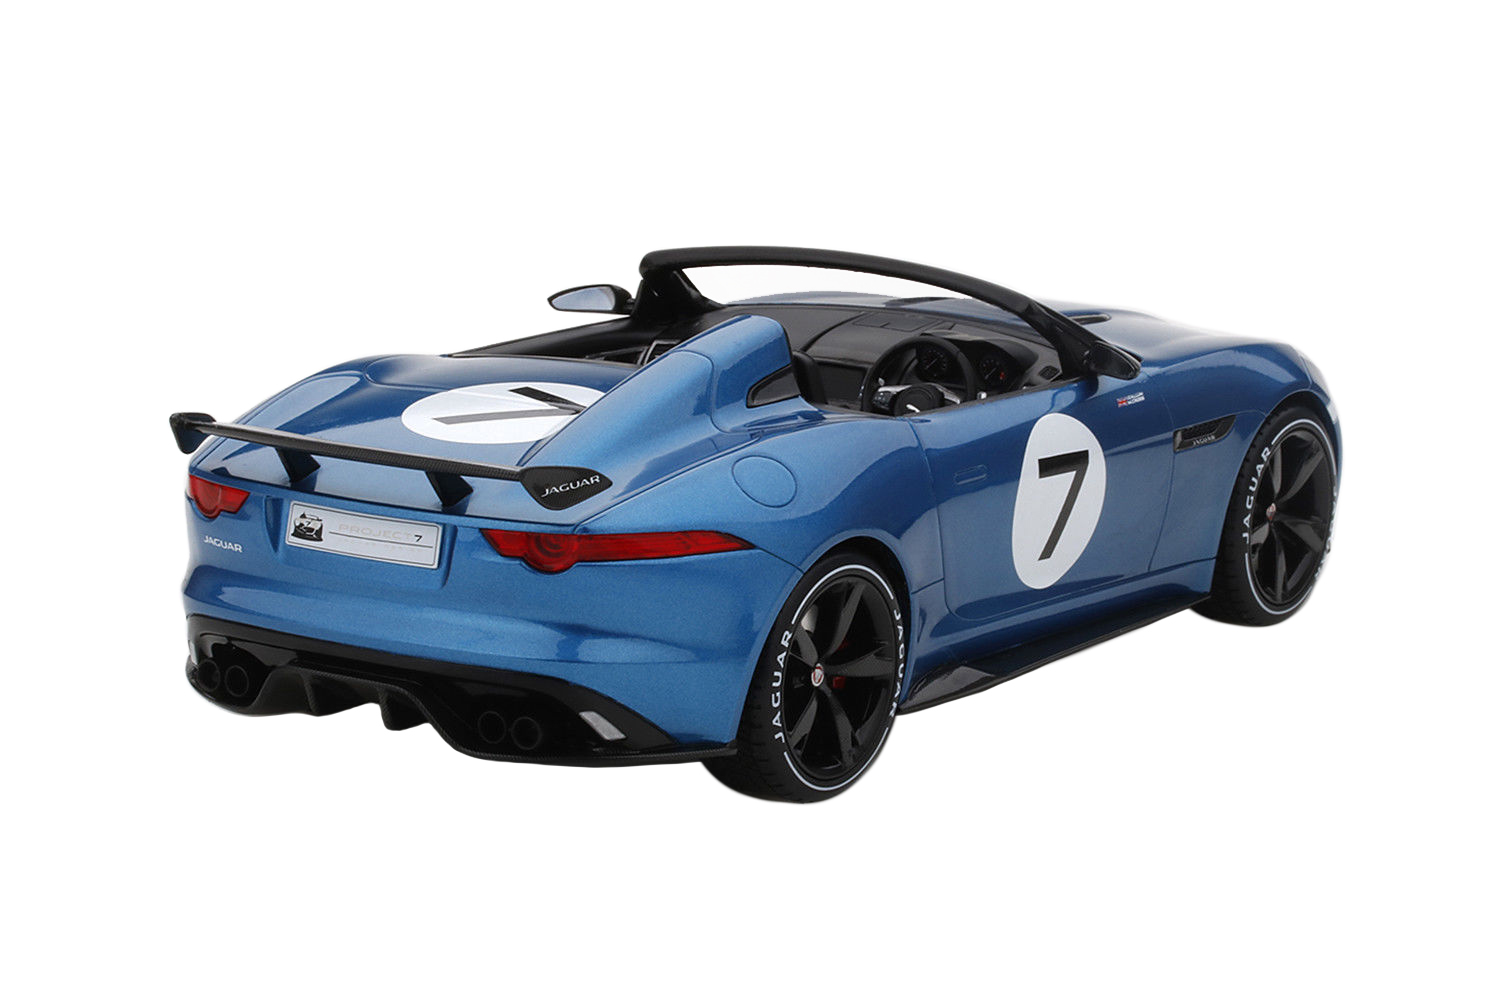 JAGUAR F-TYPE PROJECT 7 #7 BLUE CONCEPT LTD TO 999pc 1//18 BY TOP SPEED TS0035